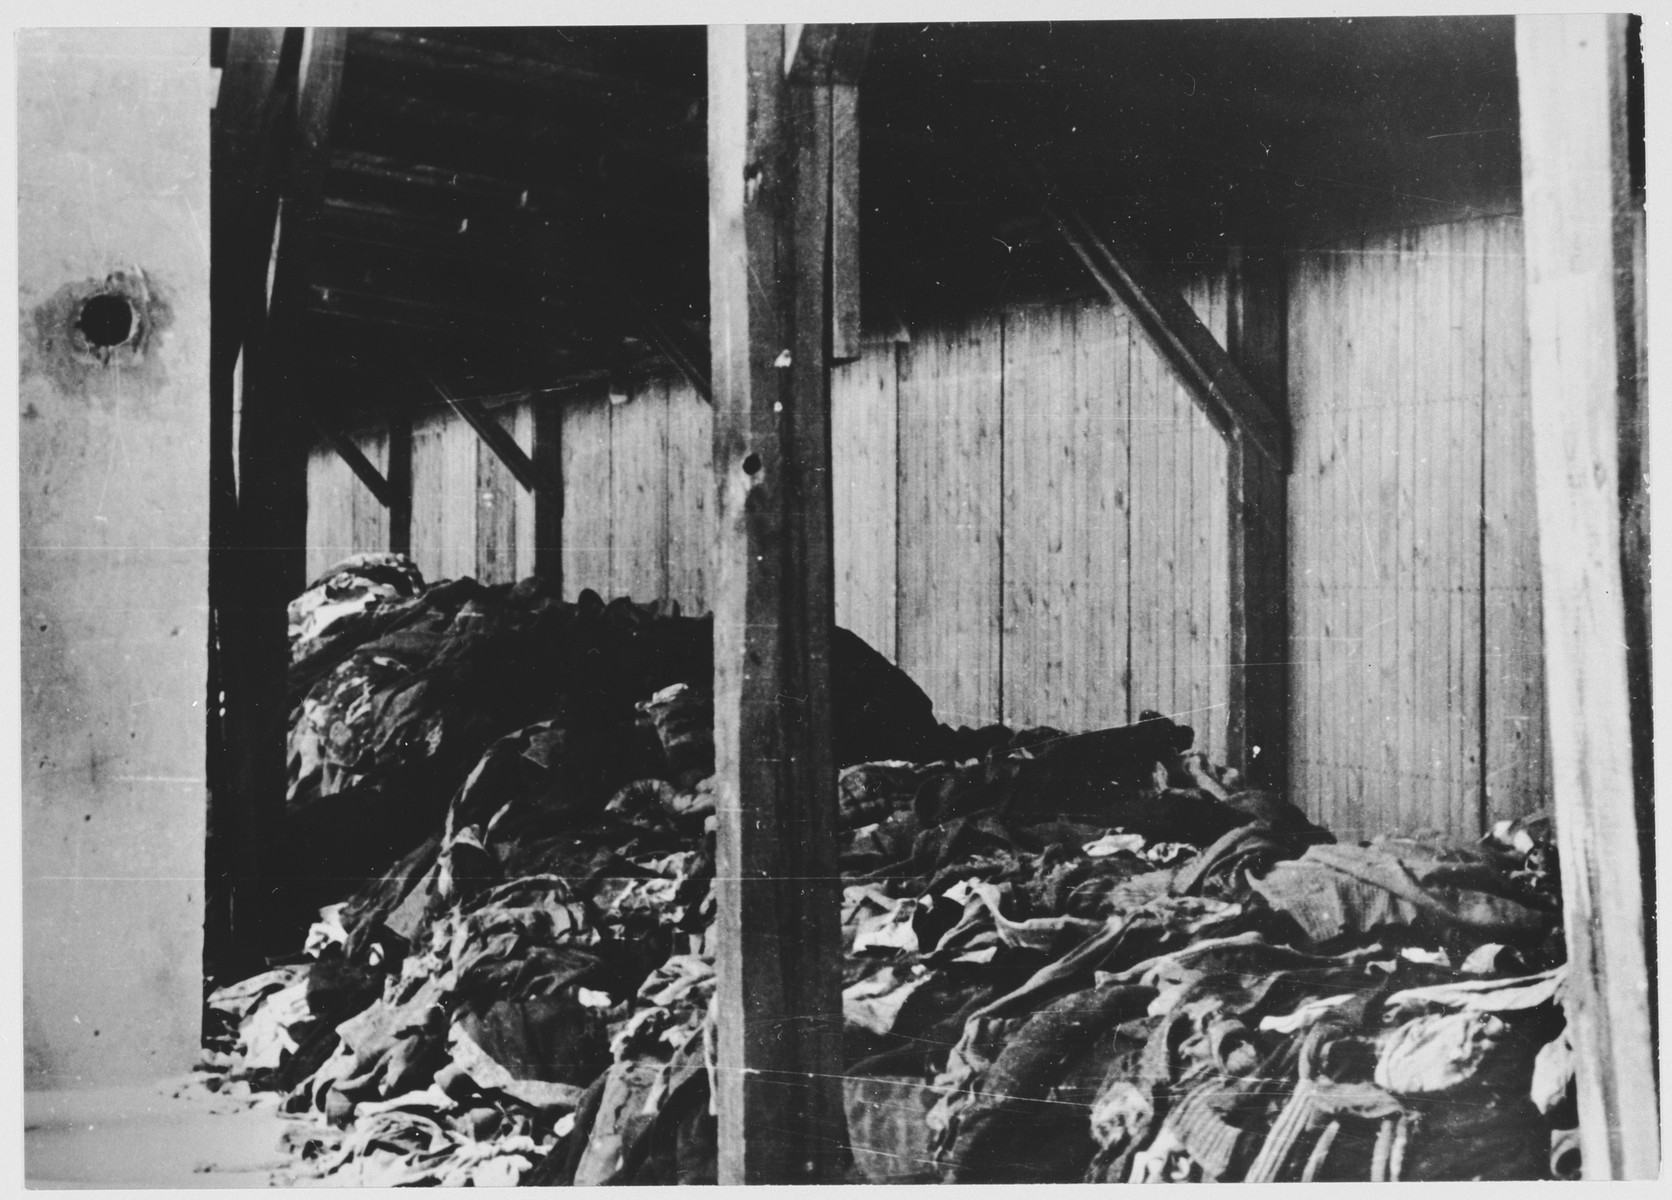 View of piles of clothing and other remains outside a barracks in the brickyard of Jasenovac III, known as KRPARA.  The photograph was taken during the May 1945 inspection of Jasenovac by the State Commission for the Investigation of Crimes Committed by the Occupiers and their Collaborators.